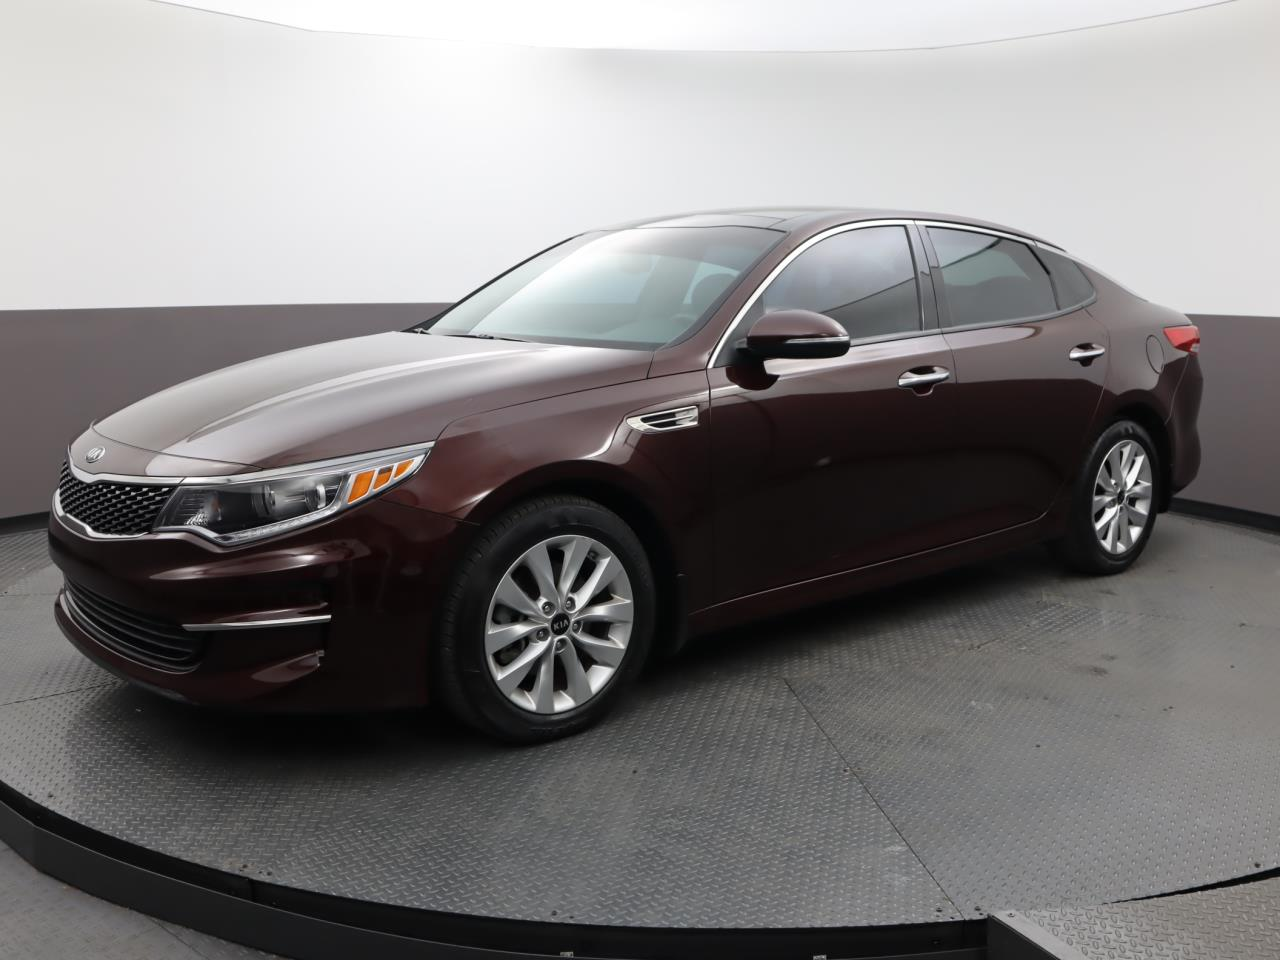 Used KIA OPTIMA 2018 MIAMI EX